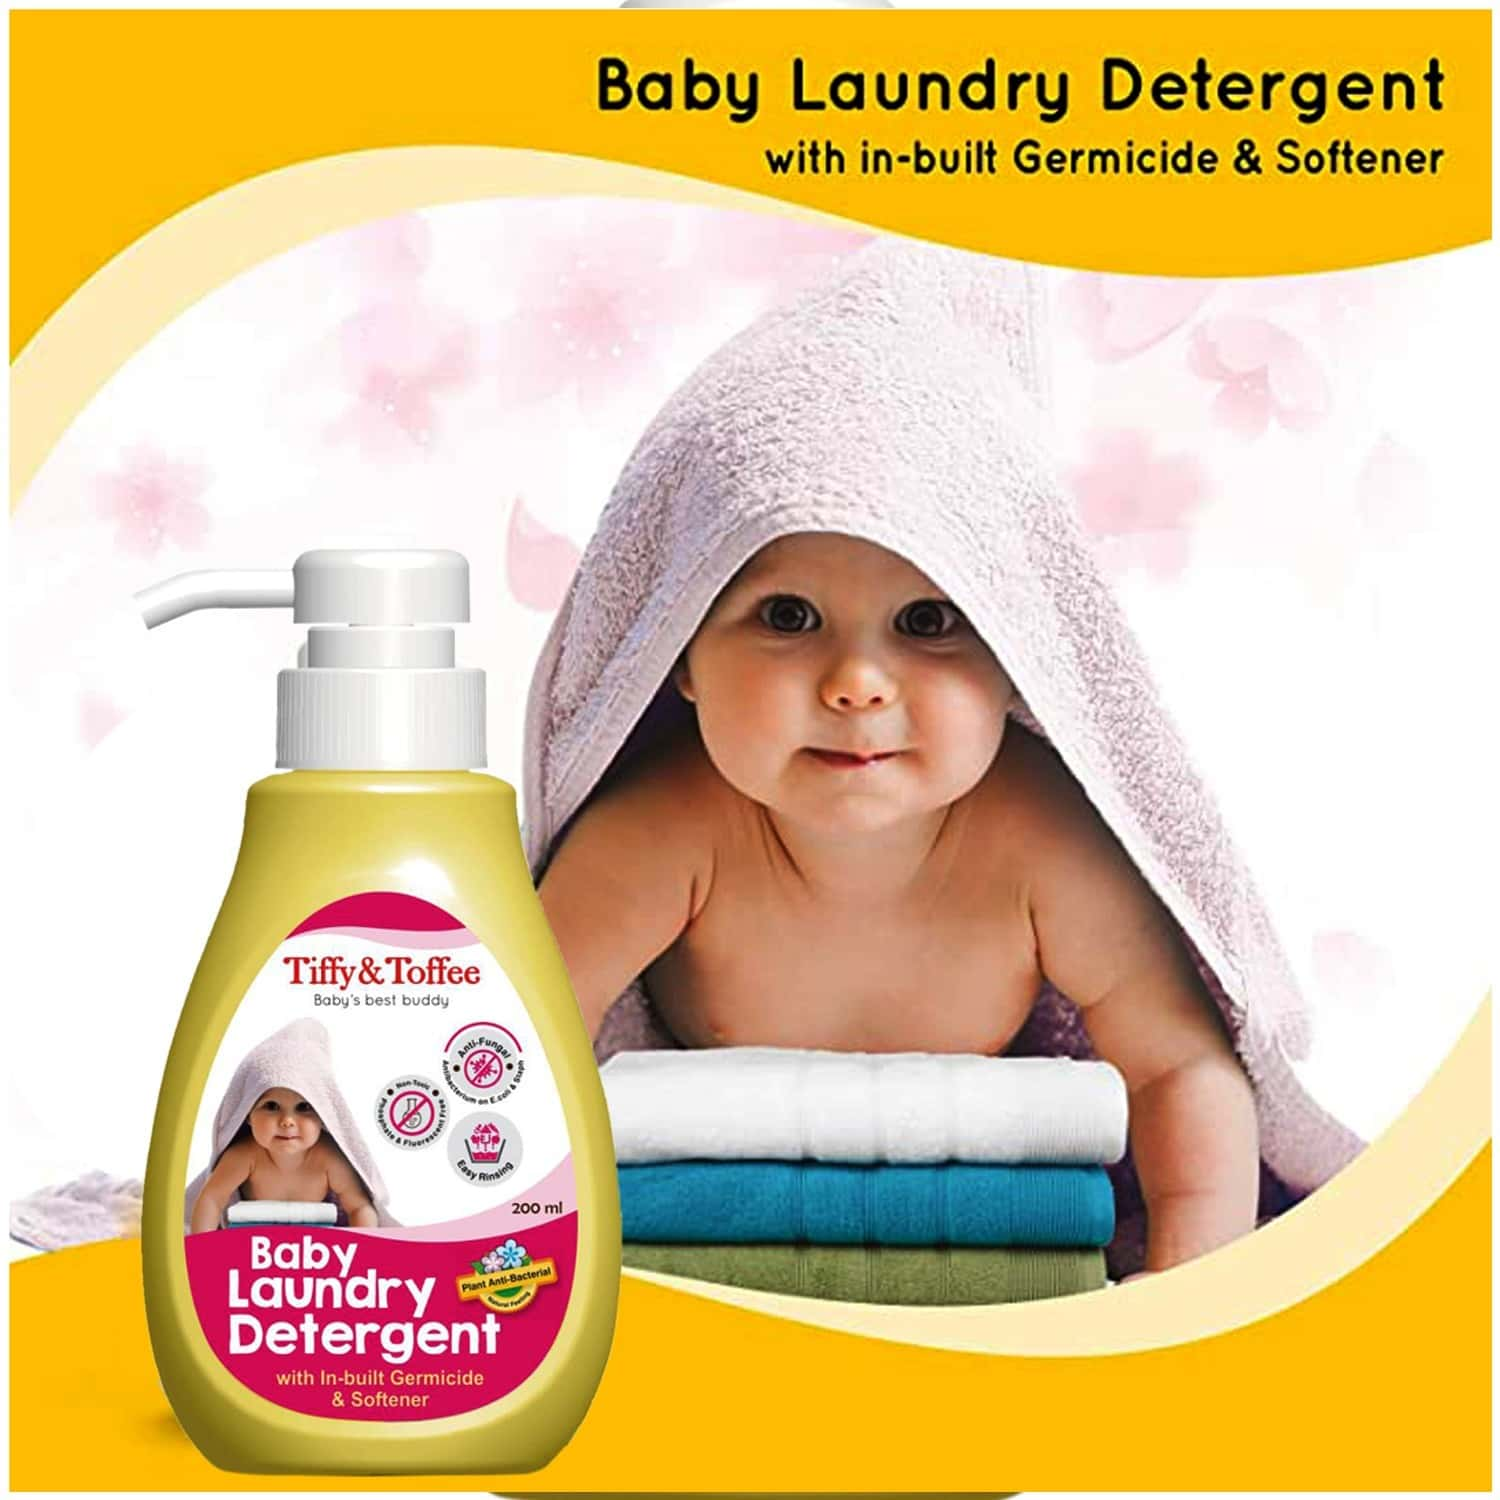 Tiffy & Toffee Baby Laundry Detergent With In-built Germicide And Softener - 200ml